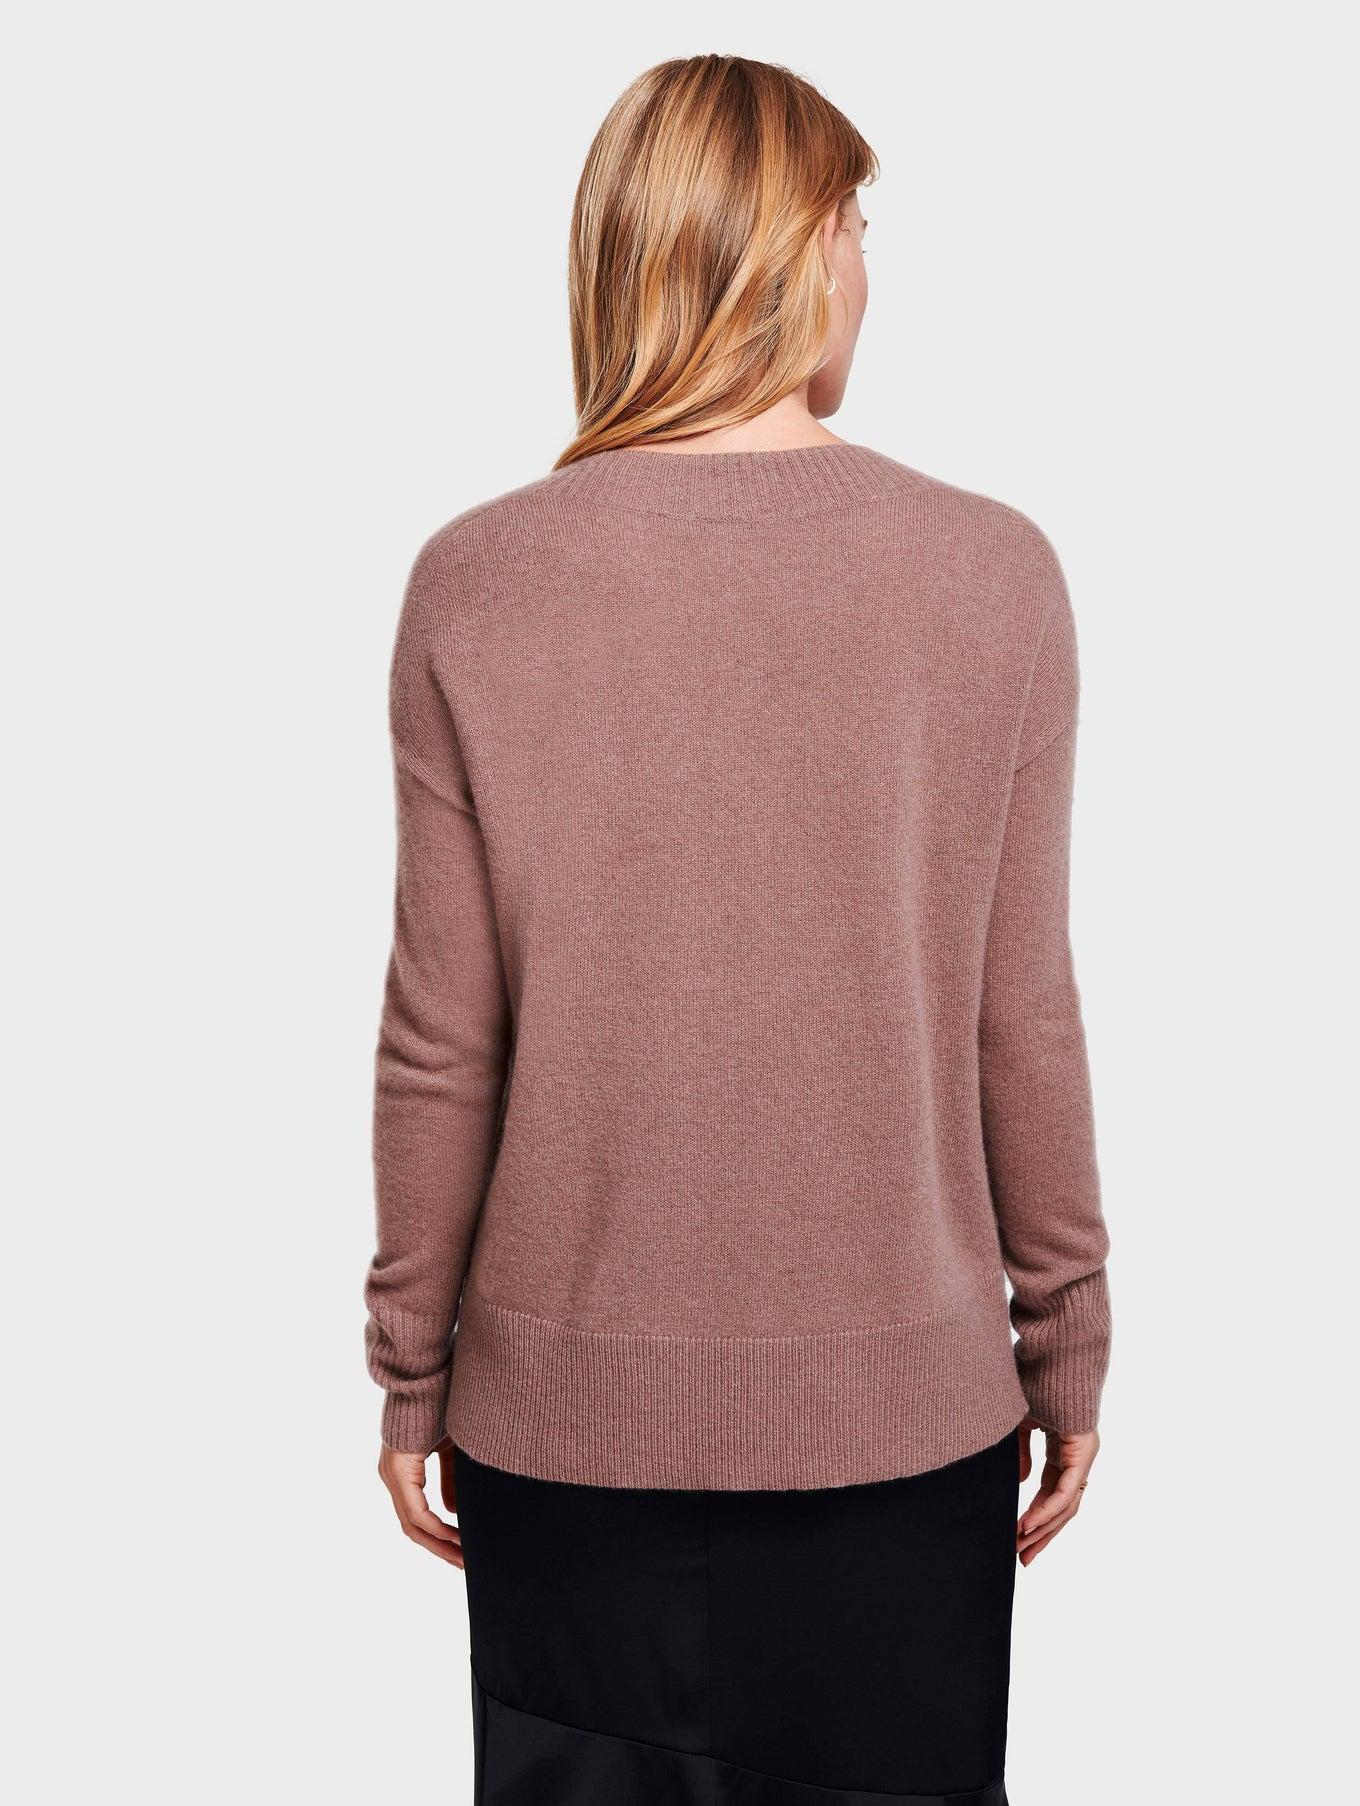 Cashmere Wide Rib V Neck - Smoky Quartz Heather - Image 3